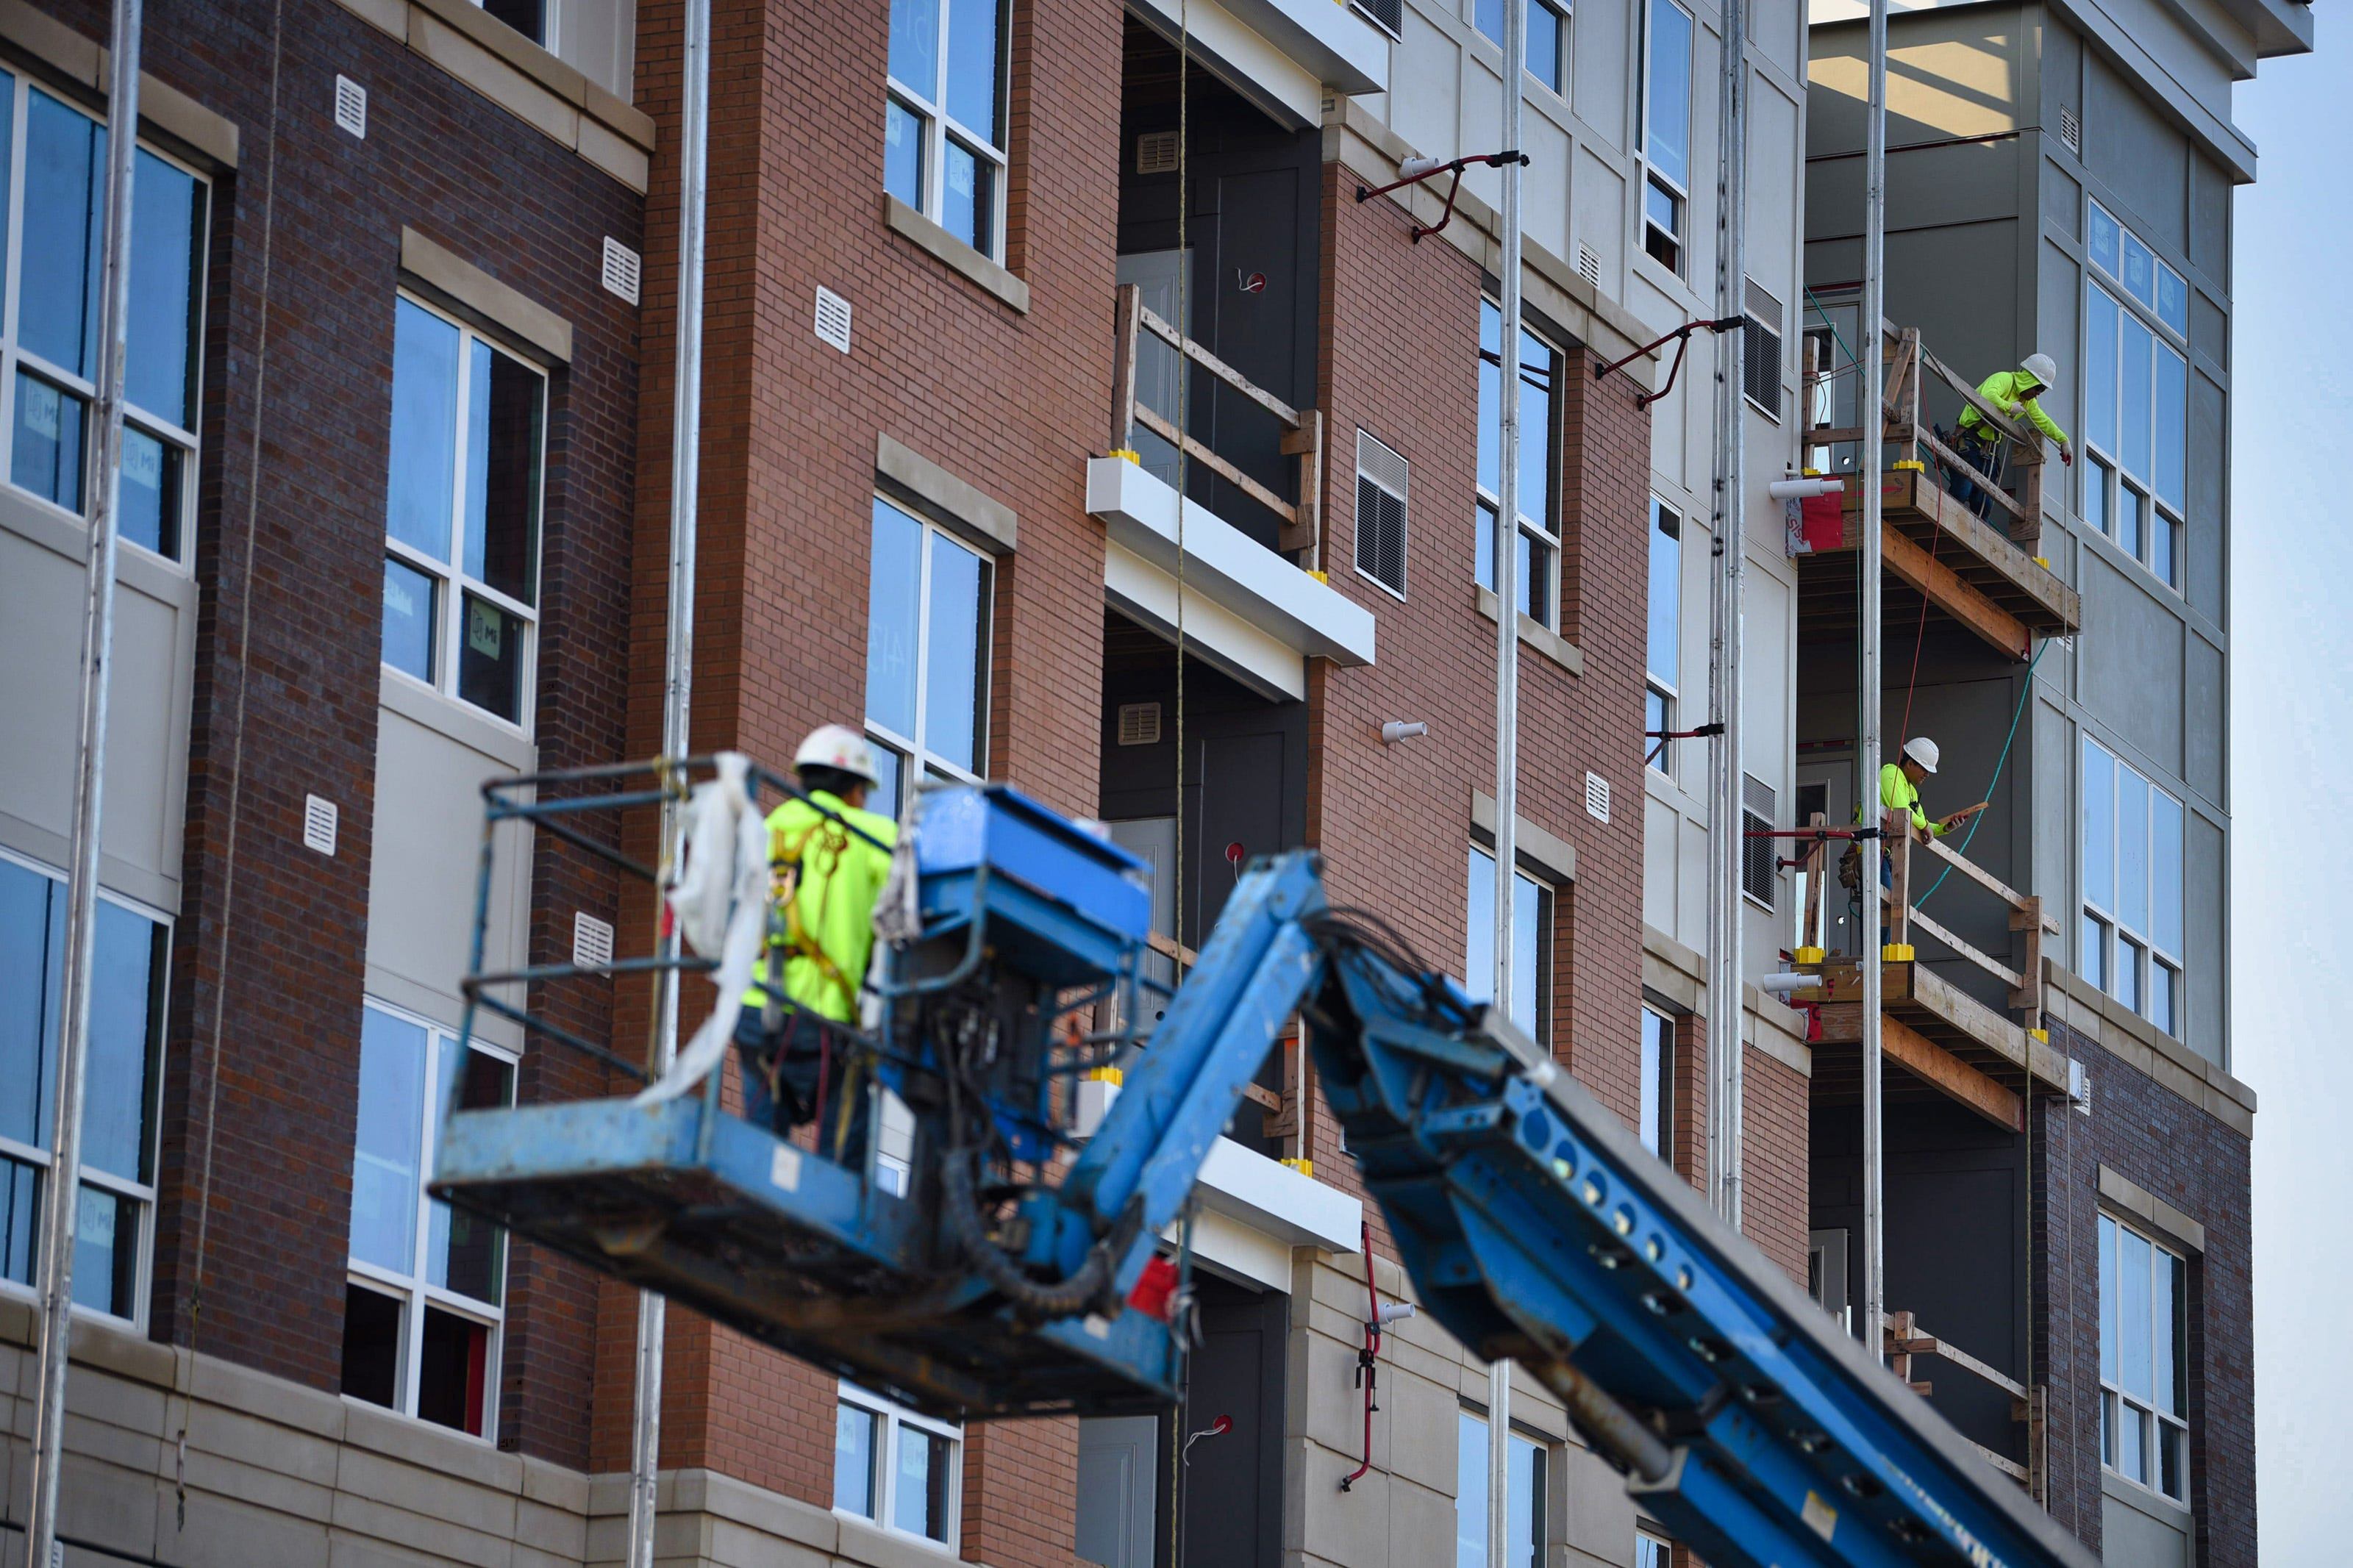 Construction workers at a luxury residential building project at the corner of Kinderkamack Road and Zabriskie Street in Hackensack on 08/12/21.